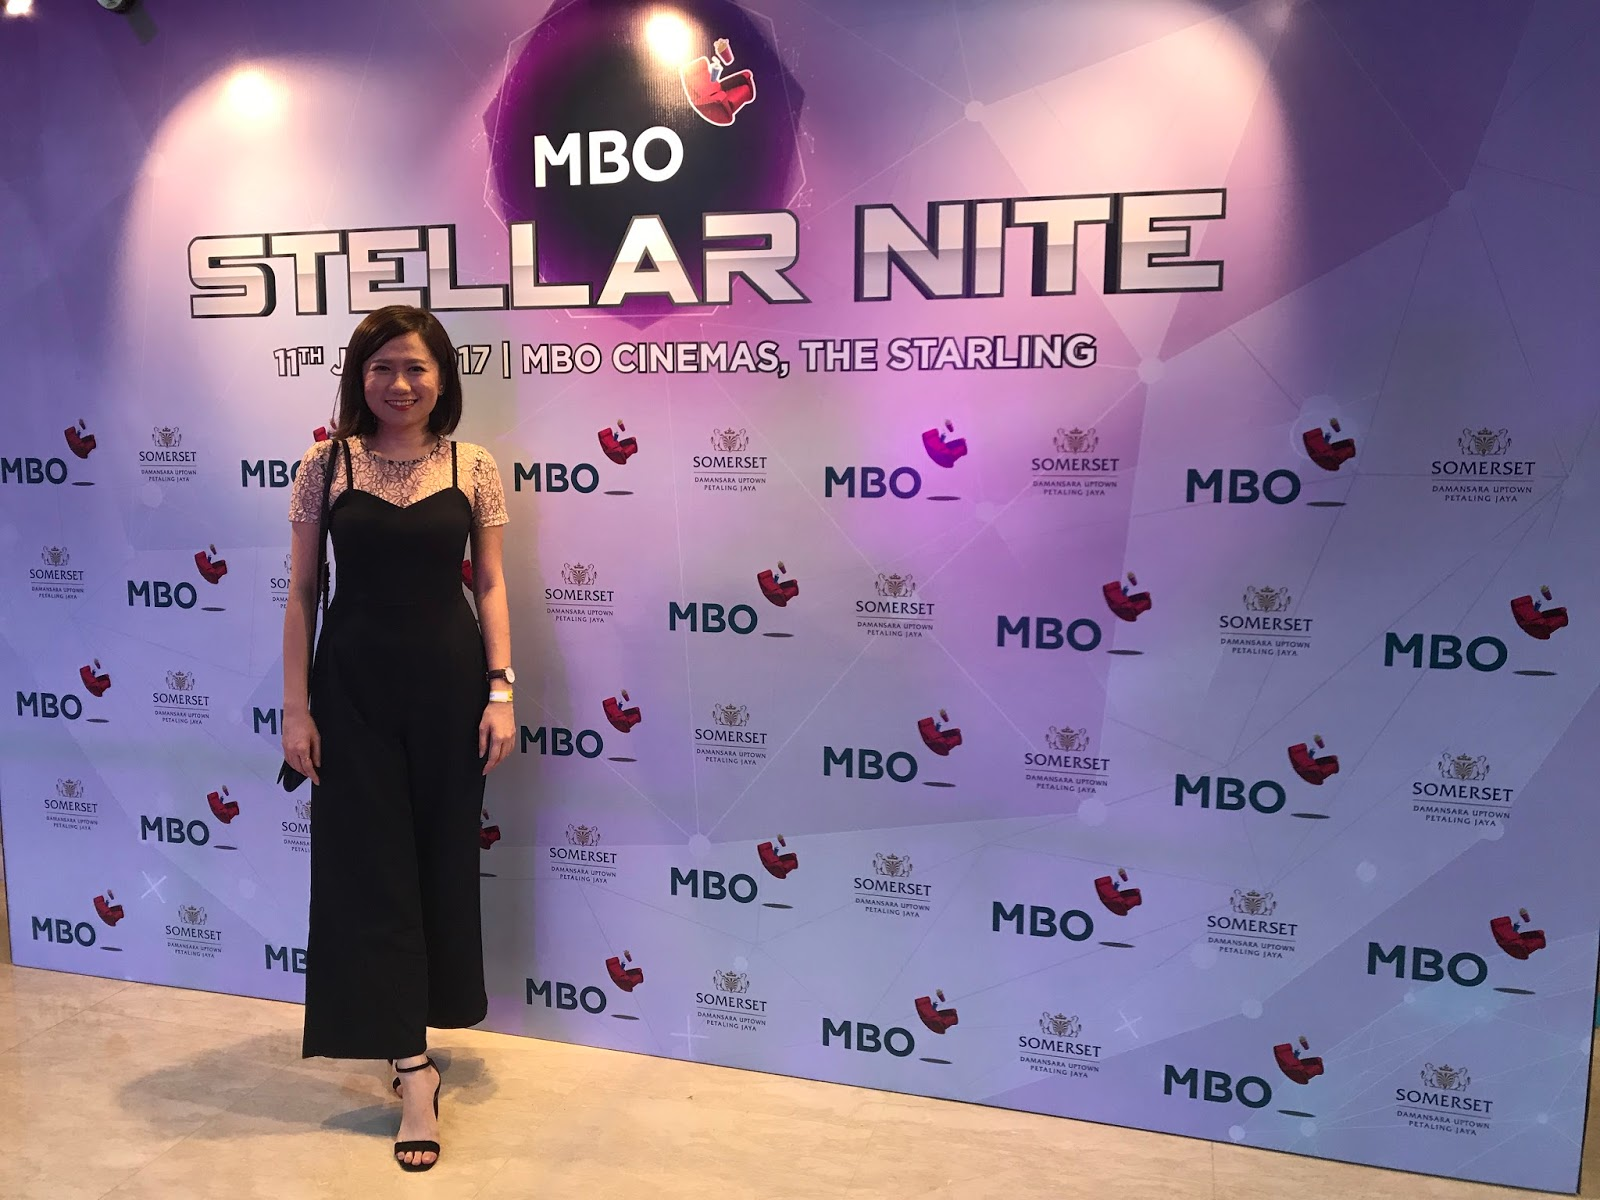 MBO Stellar Nite | MBO Flagship Cinema @ The Starling Mall